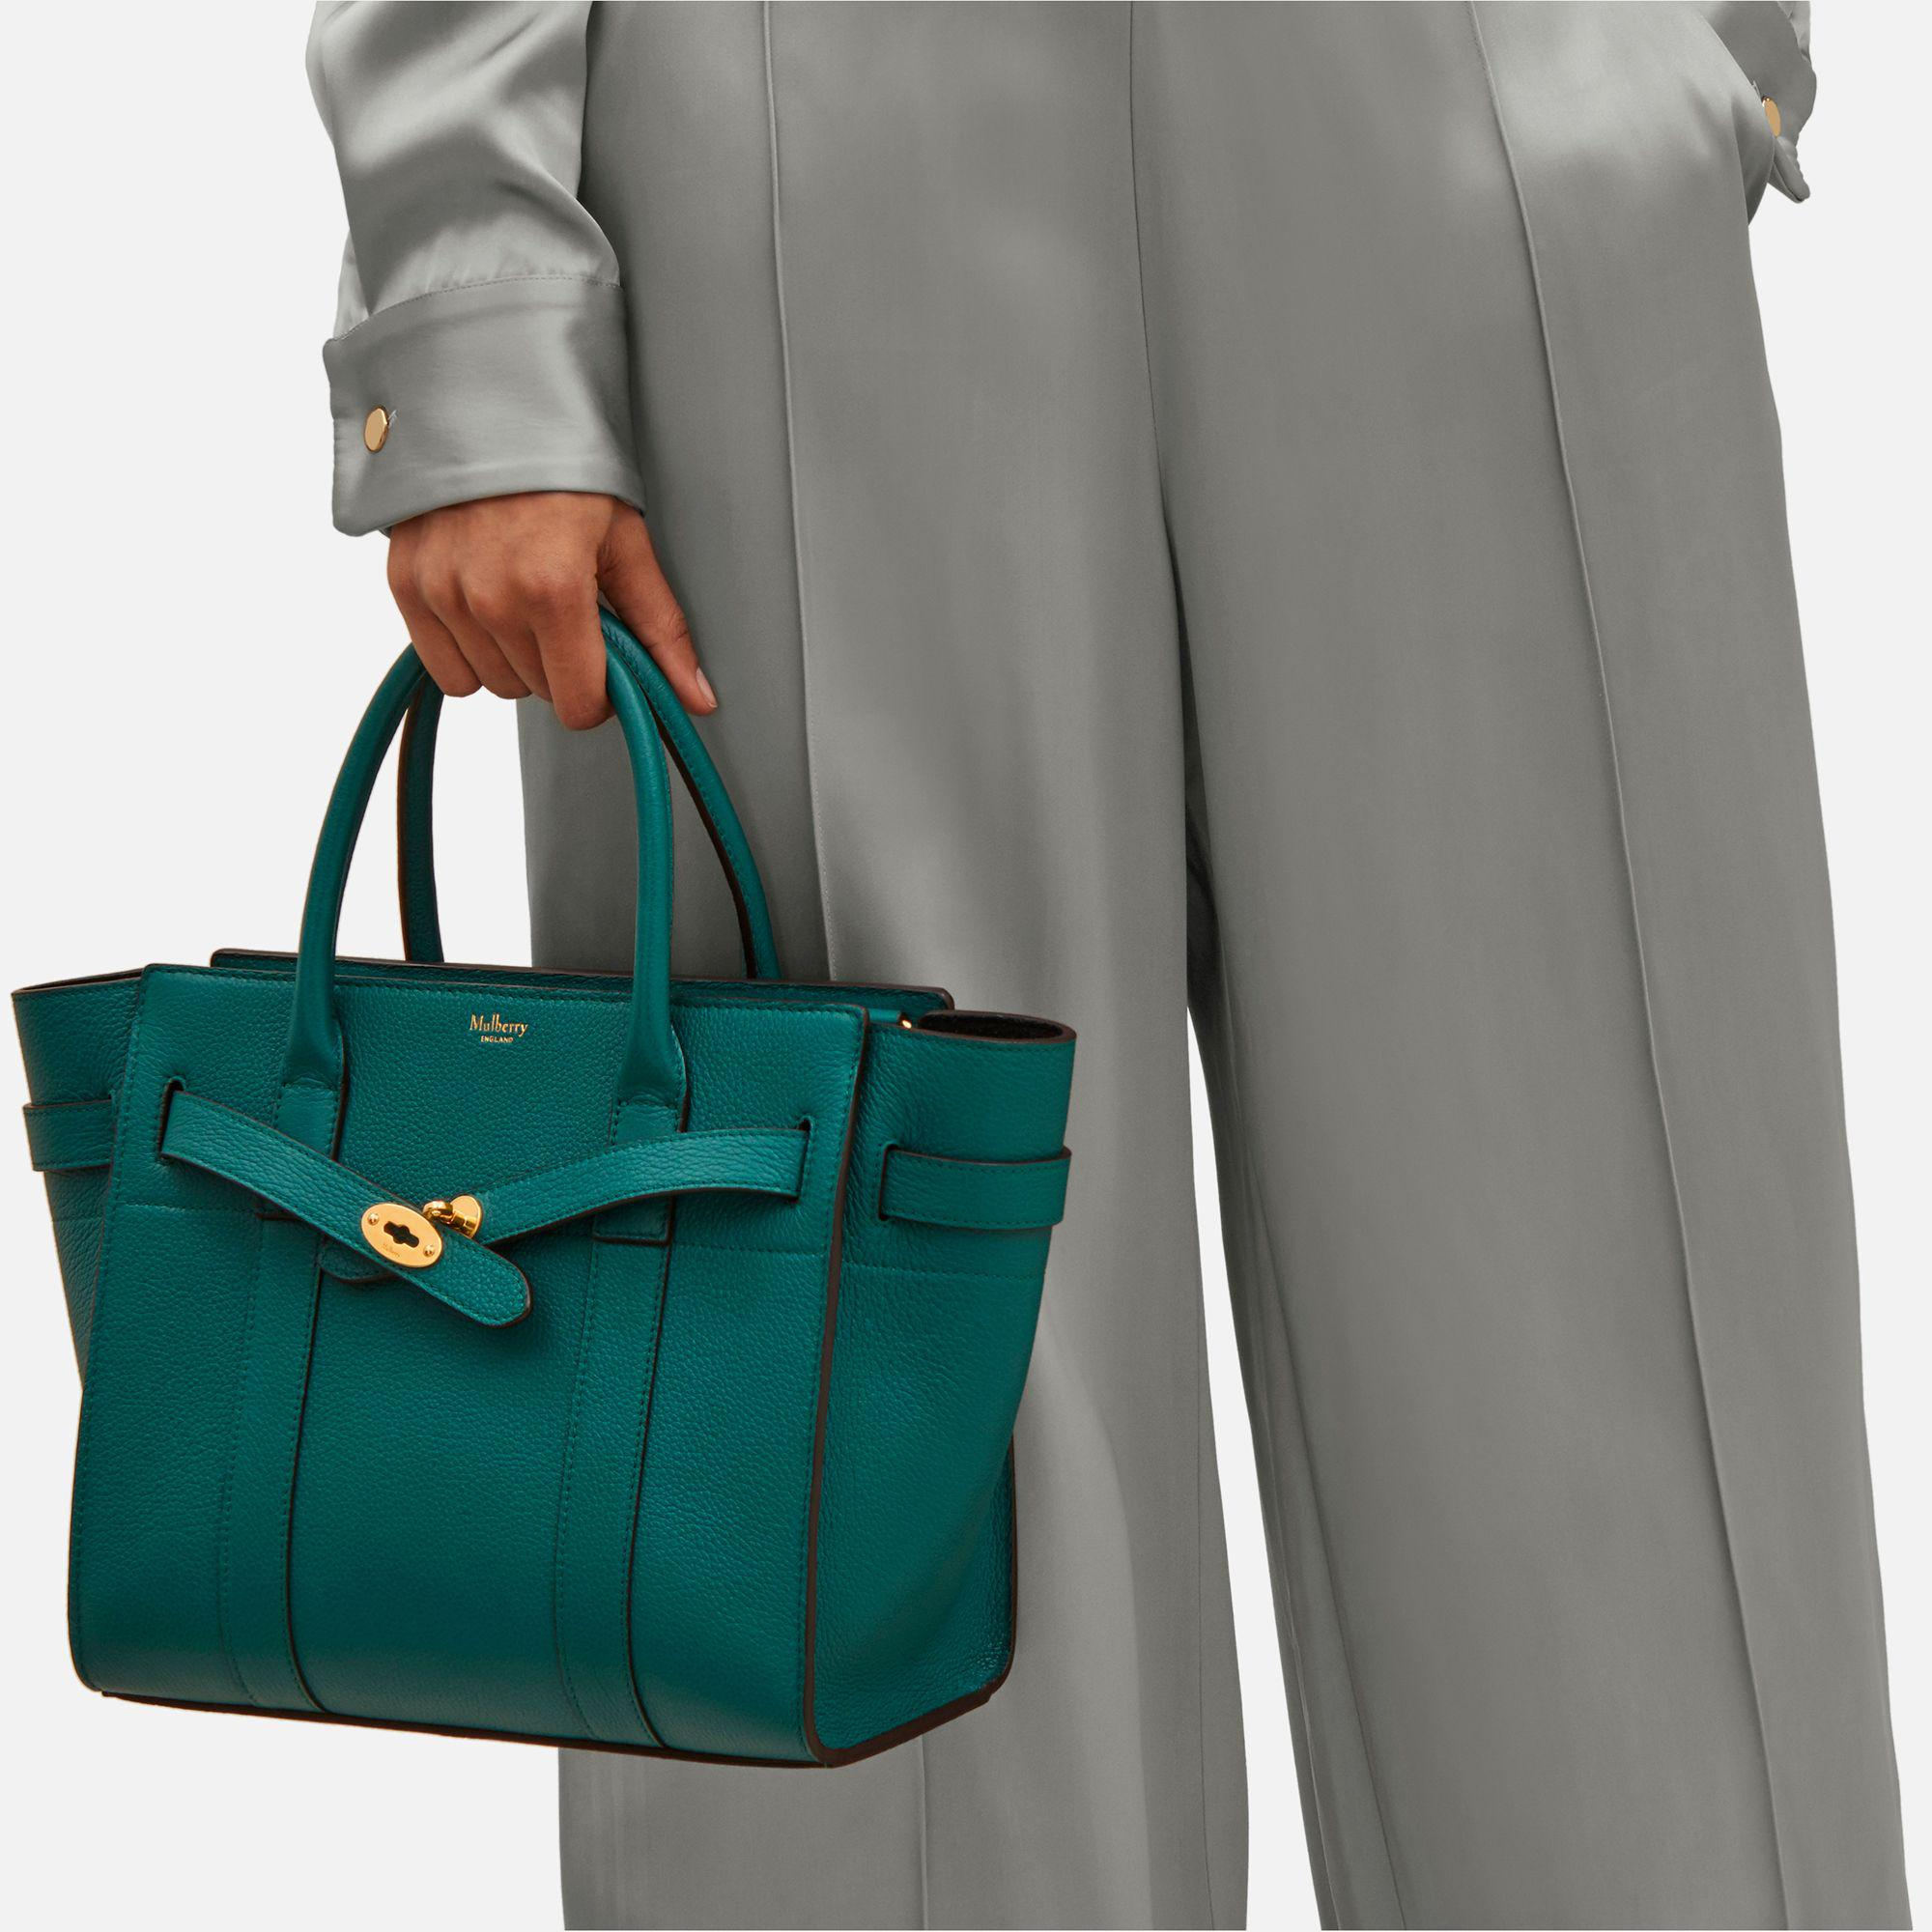 42da79ae48d0 Lyst - Mulberry Small Zipped Bayswater in Green